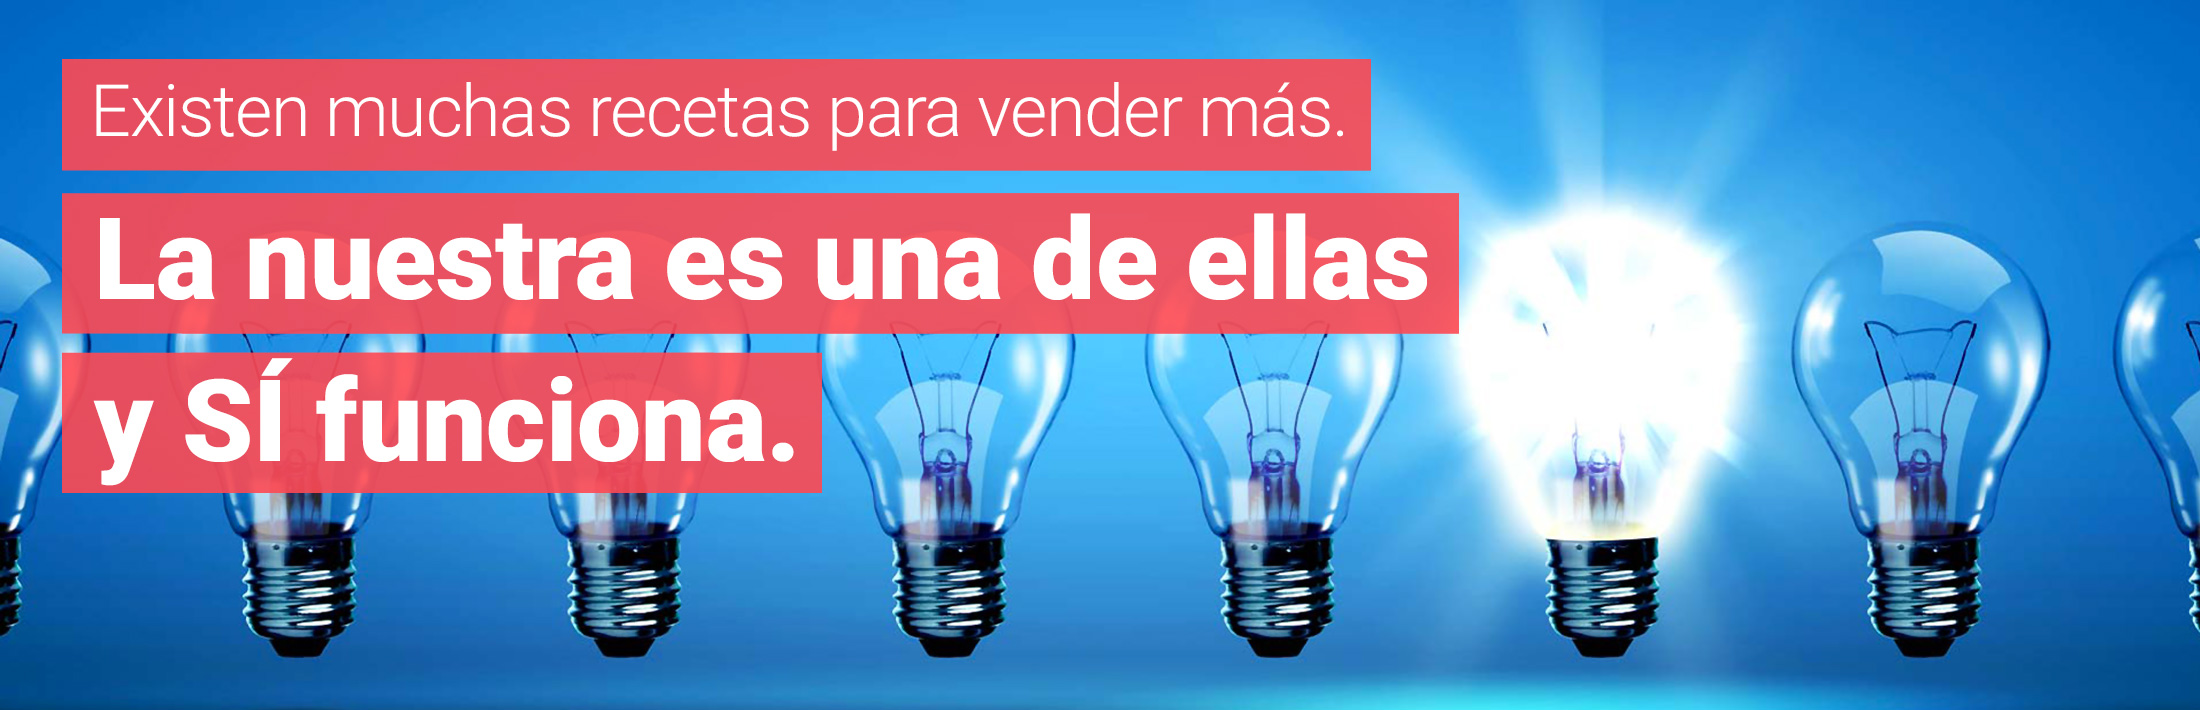 Marketing y Ventas | Sinapsis Marketing & Sales Consulting